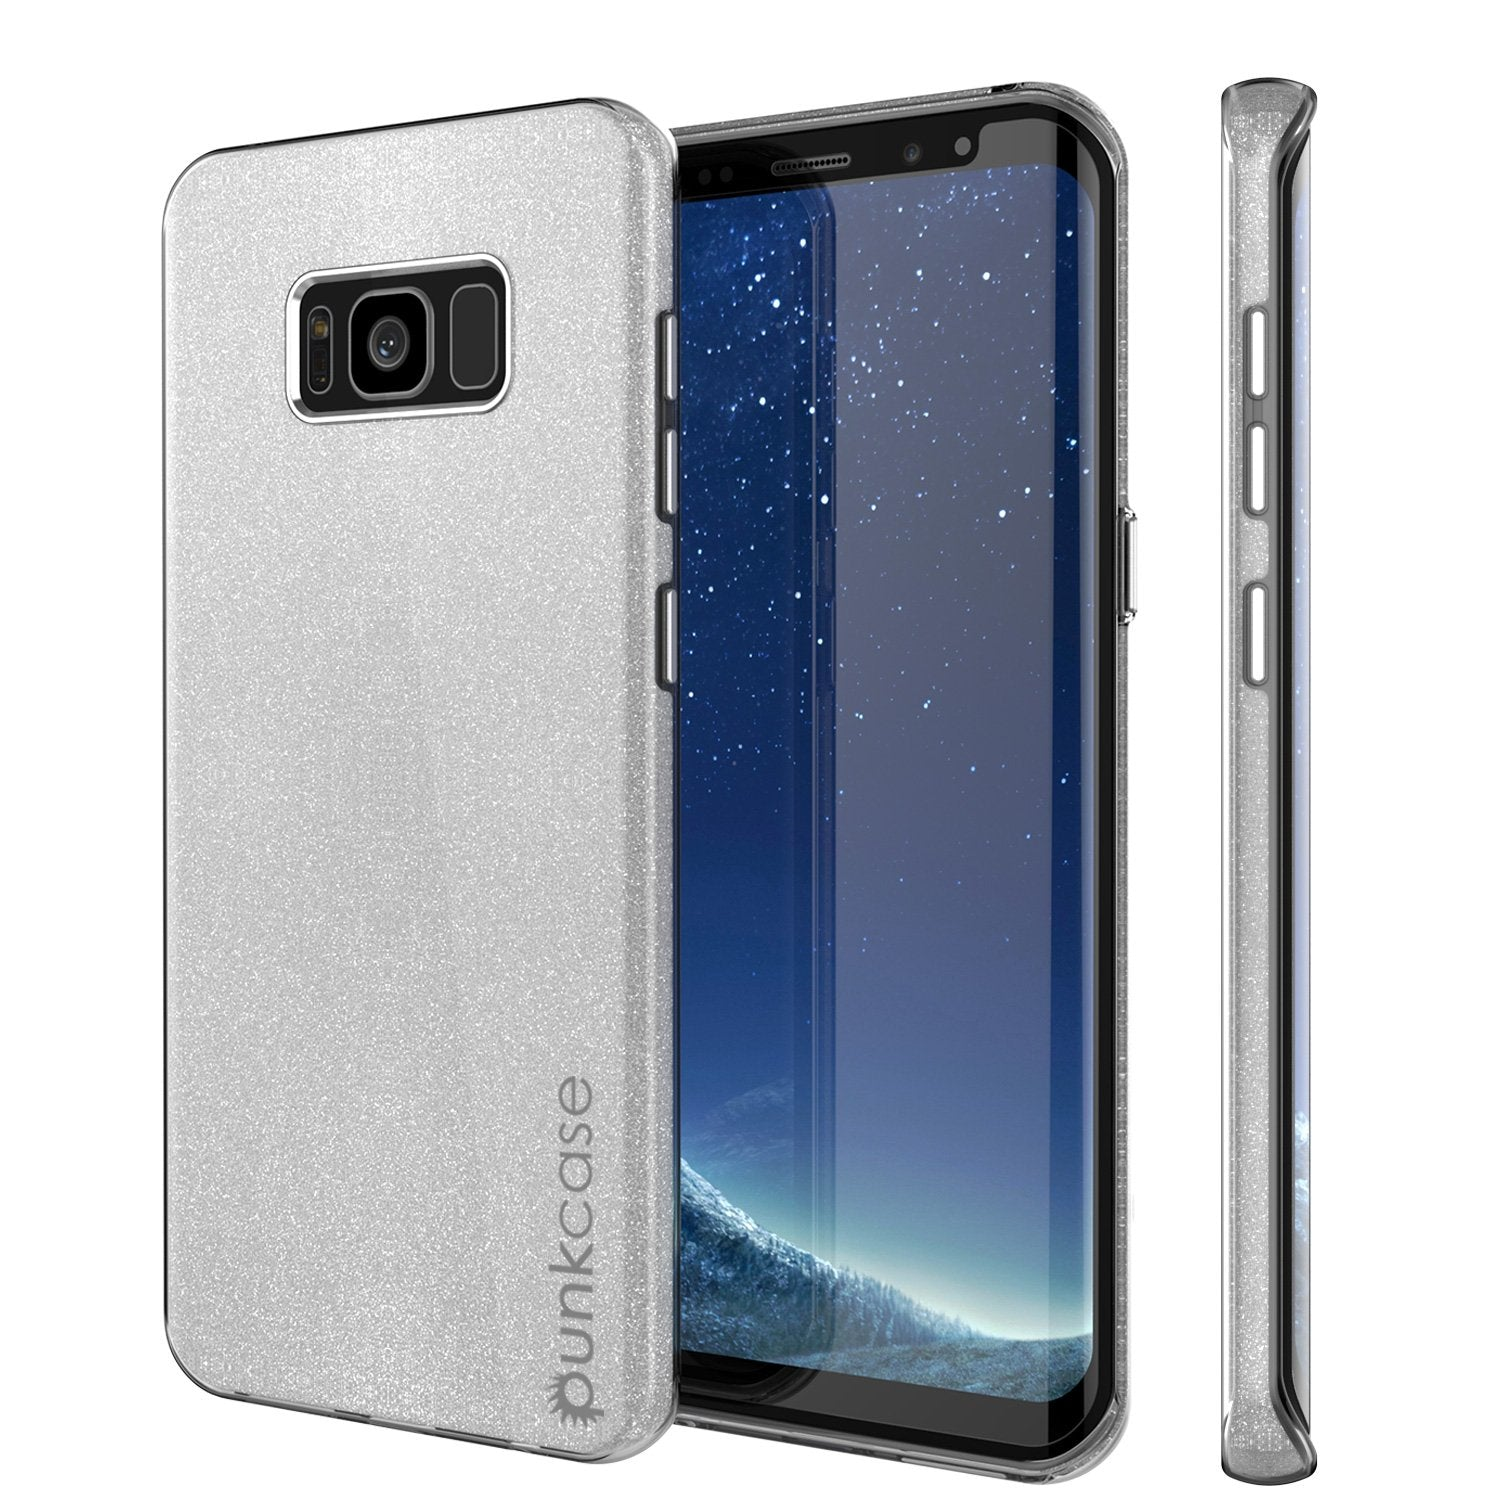 Galaxy S8 Case, Punkcase Galactic 2.0 Series Ultra Slim Protective Armor TPU Cover w/ PunkShield Screen Protector | Lifetime Exchange Warranty | Designed for Samsung Galaxy S8 [Silver] - PunkCase NZ